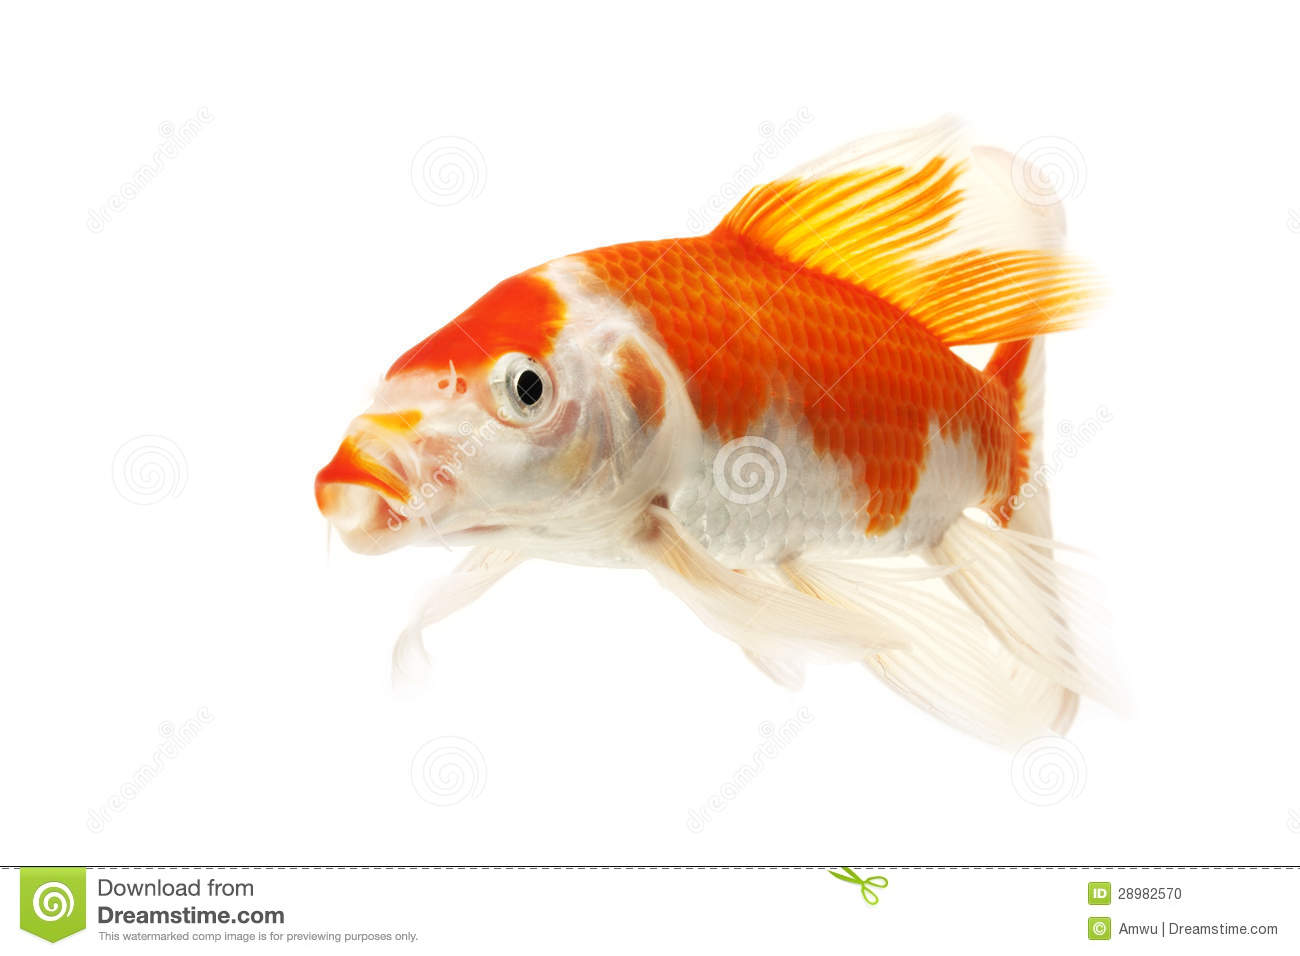 Red and white koi fish stock photo image 28982570 for Red and white koi fish